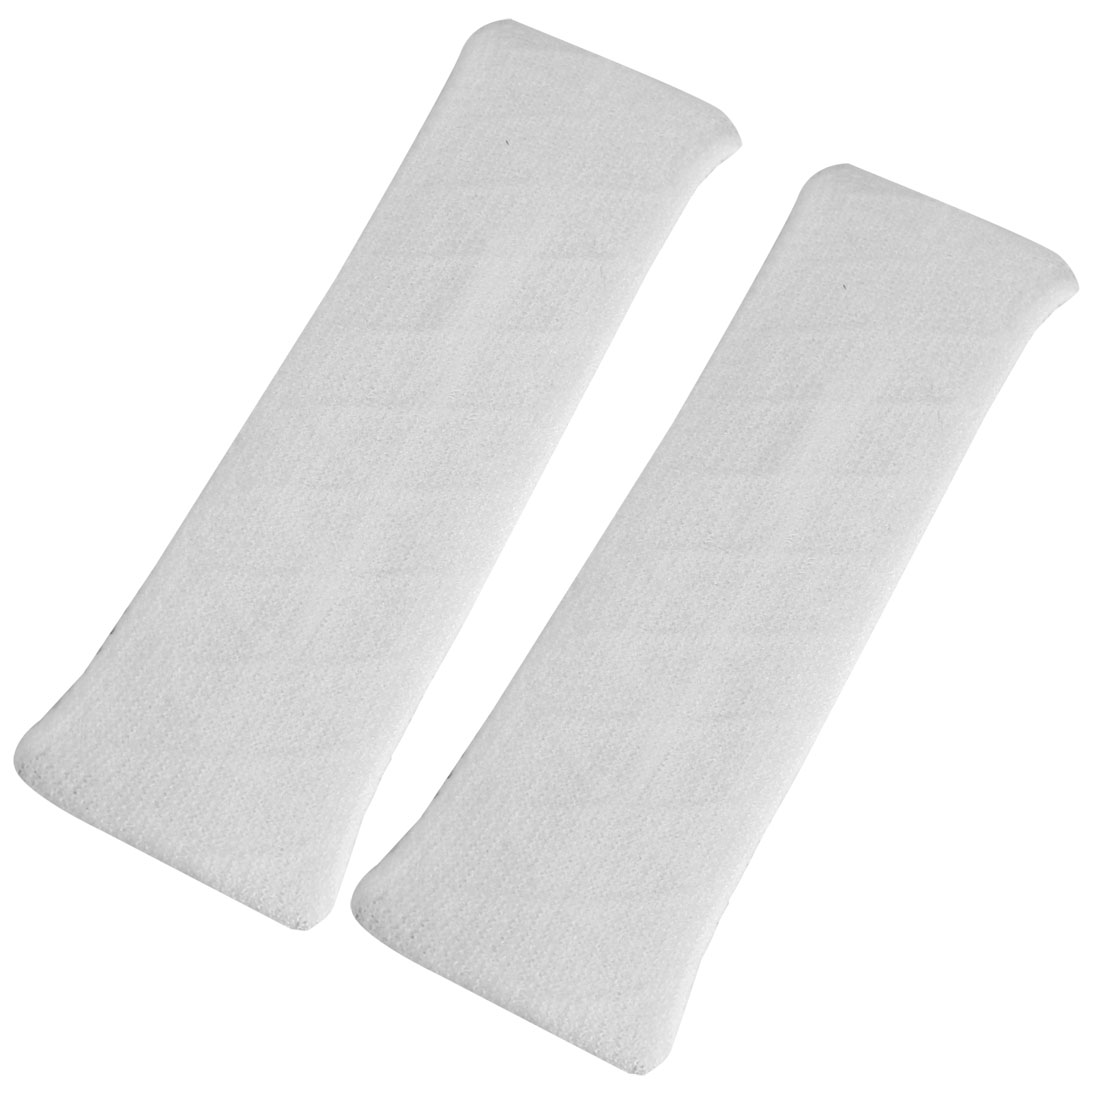 Household Bathing Elastic Fabric Headband Hair Band White 2 Pcs for Ladies